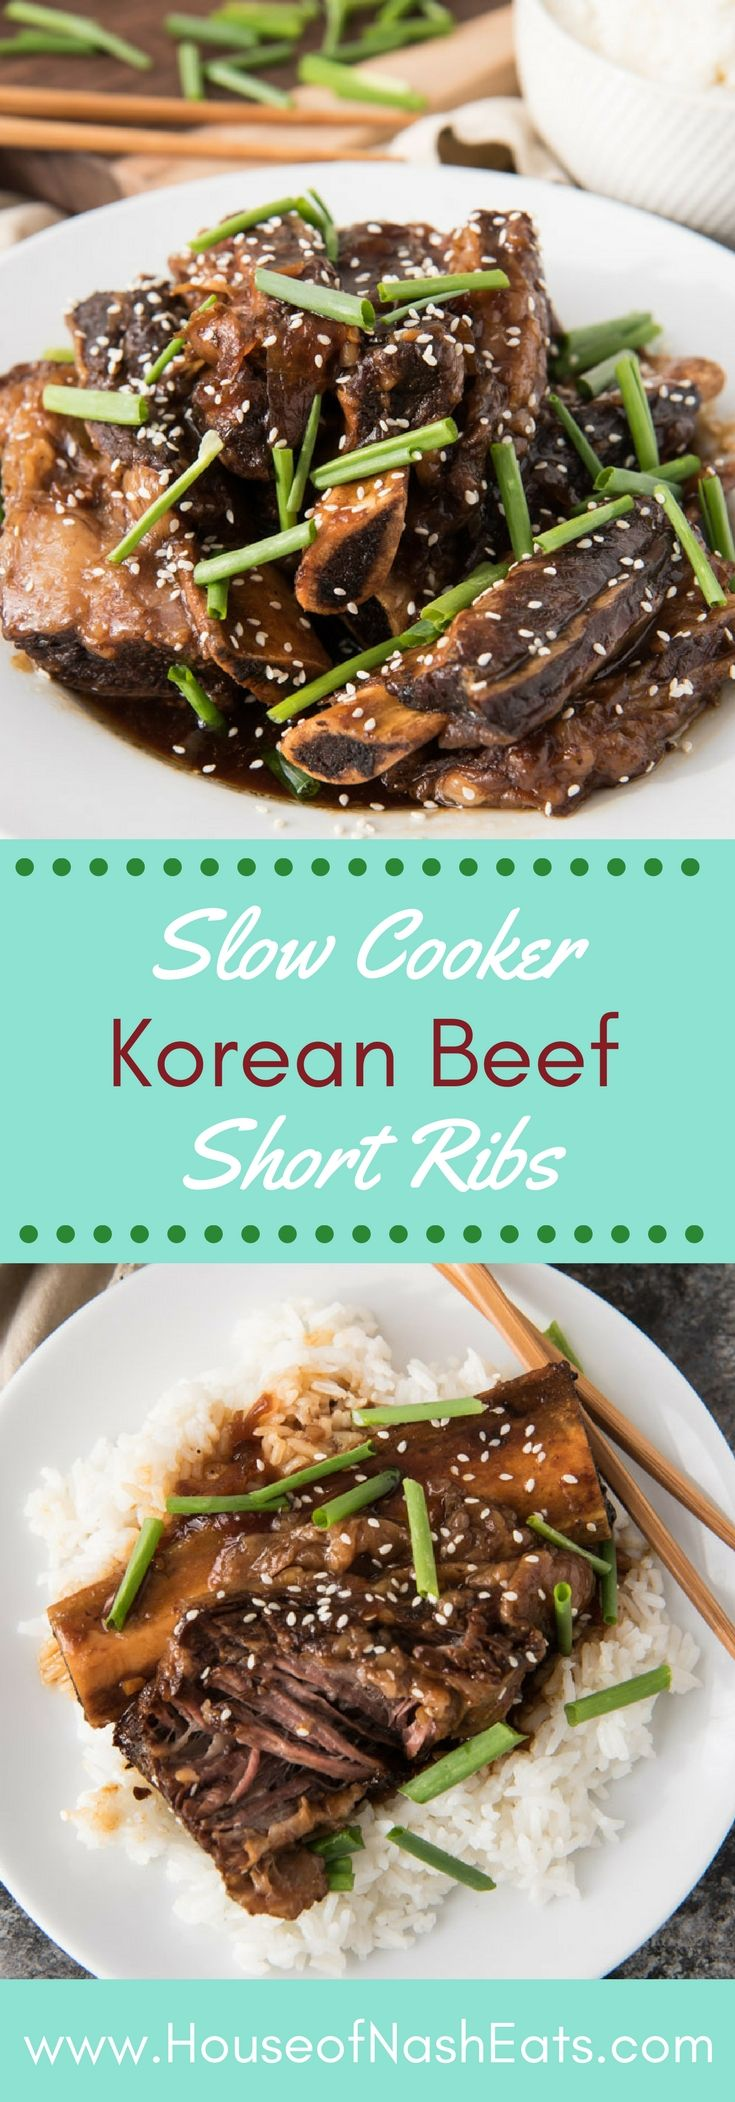 5062 best culinary-Asia images on Pinterest | Asian food recipes ...